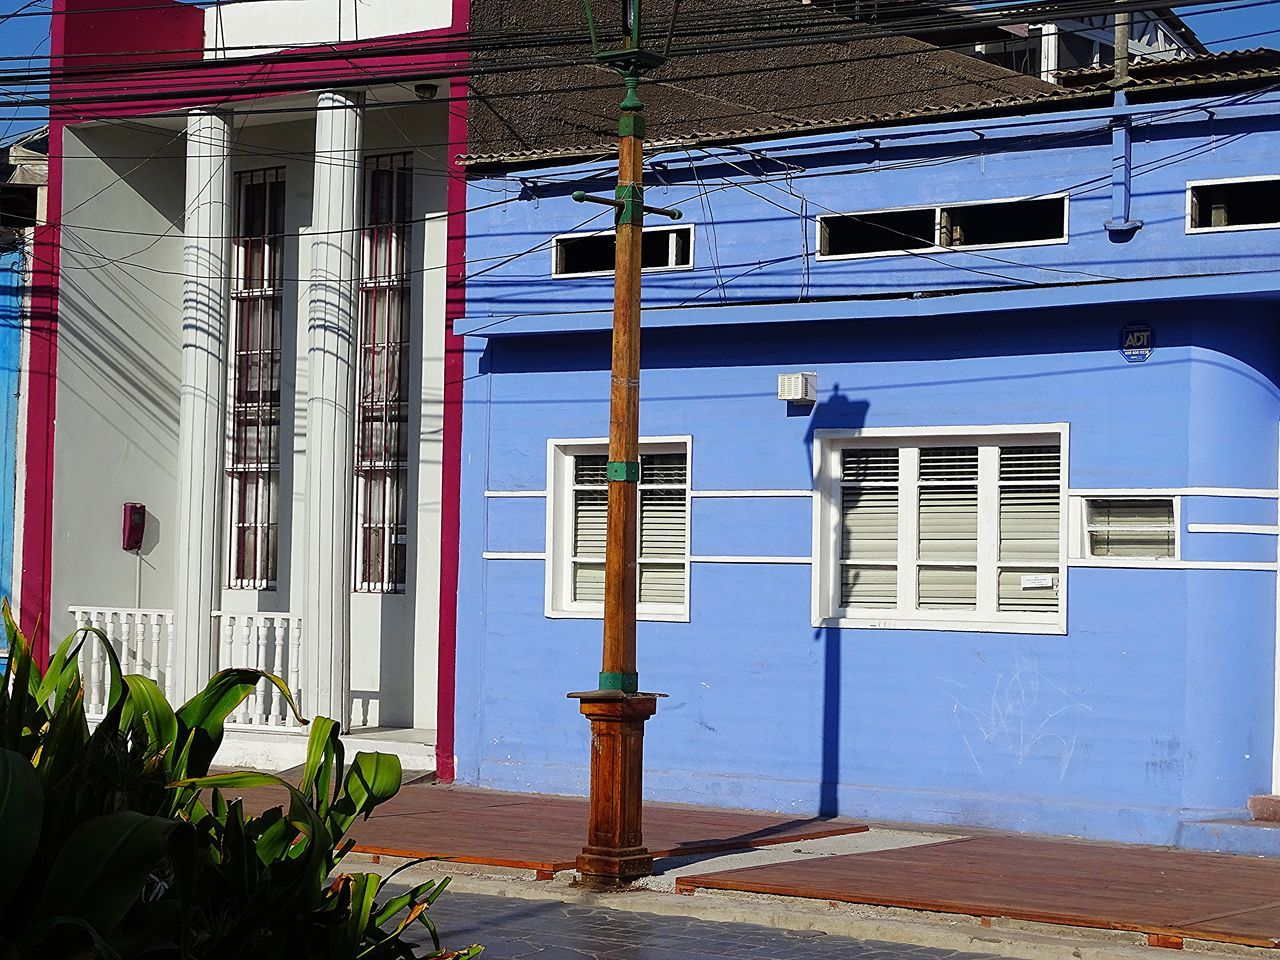 Architecture Building Exterior Built Structure City Day Iquique Chile  No People Outdoors Residential Building Residential Structure